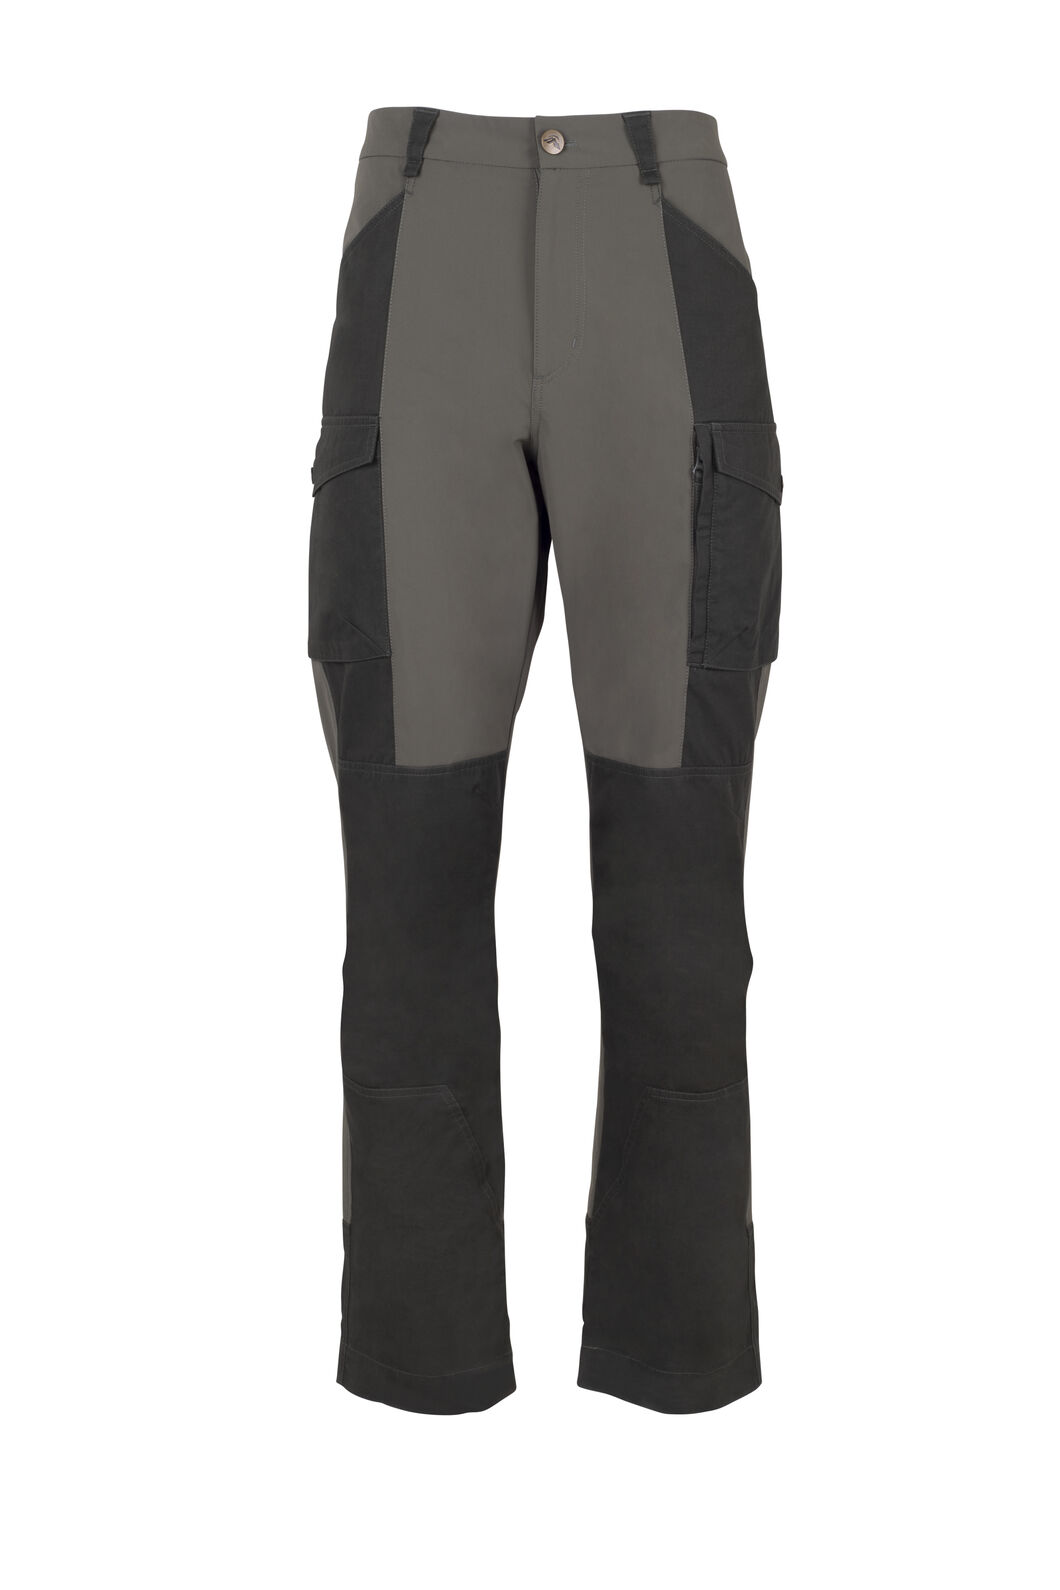 Macpac Scree Pants - Men's, Peat, hi-res